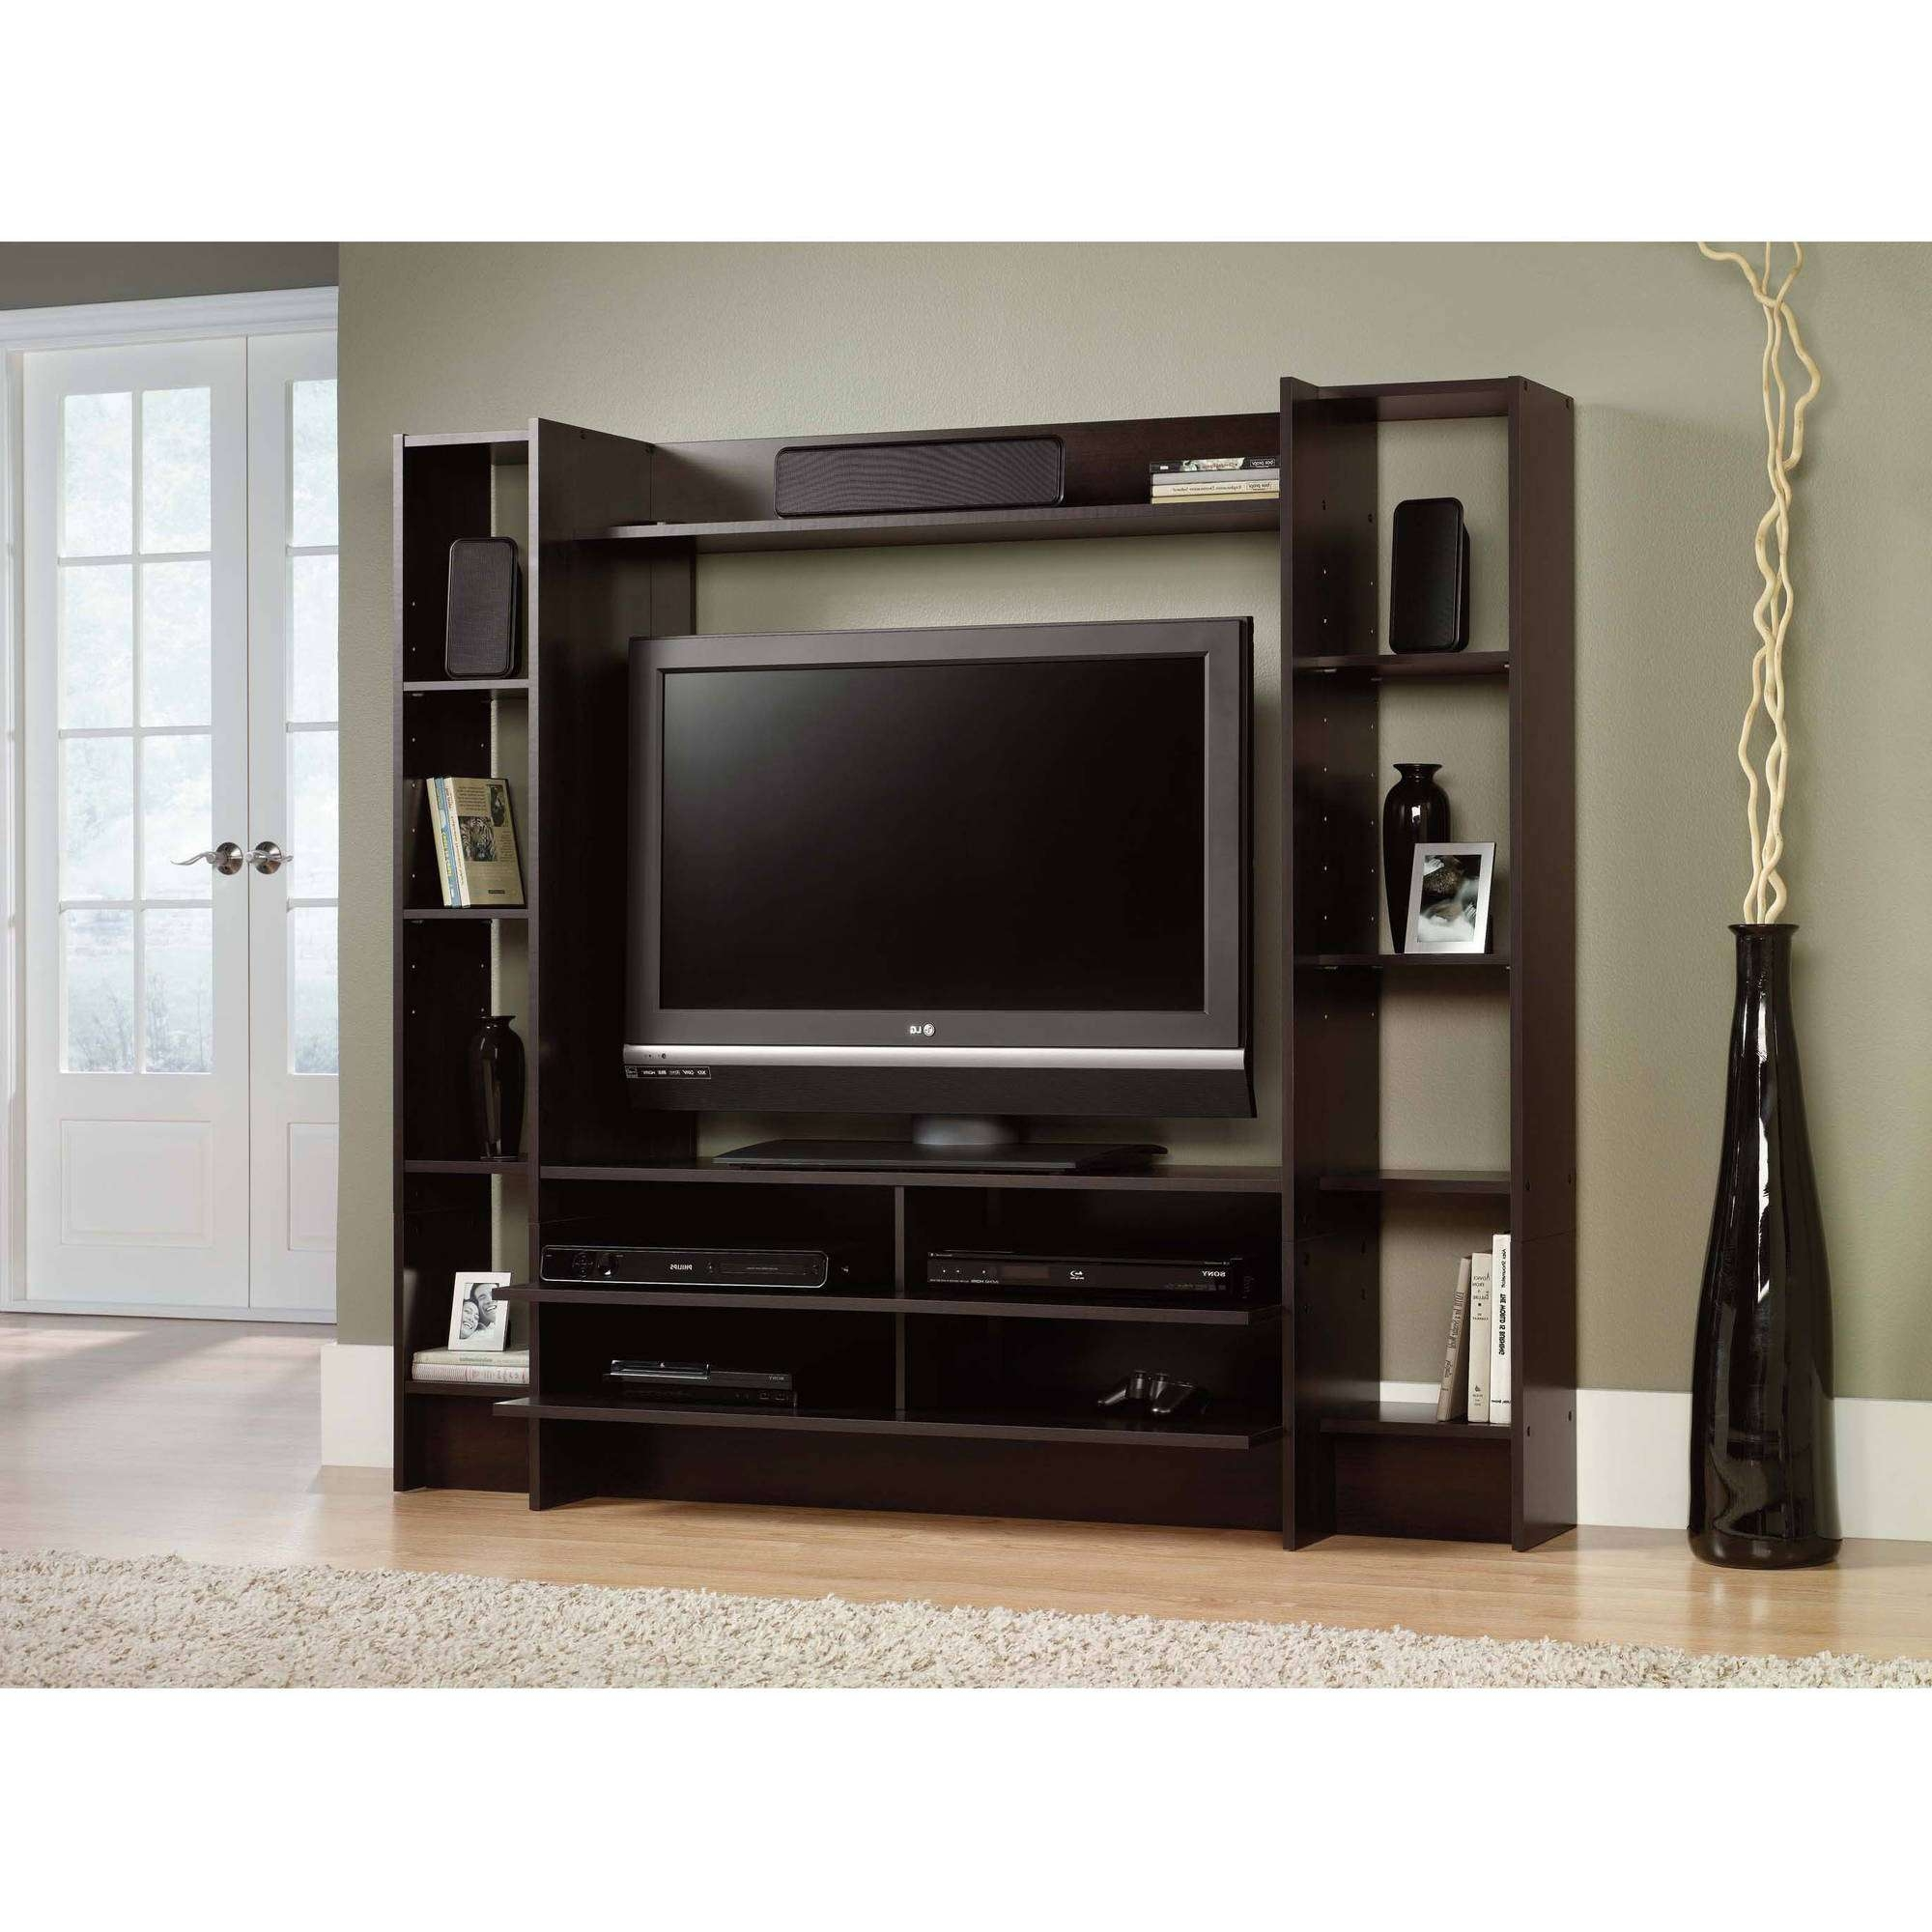 Tv Stands & Entertainment Centers – Walmart With Tv Stands And Cabinets (View 8 of 15)